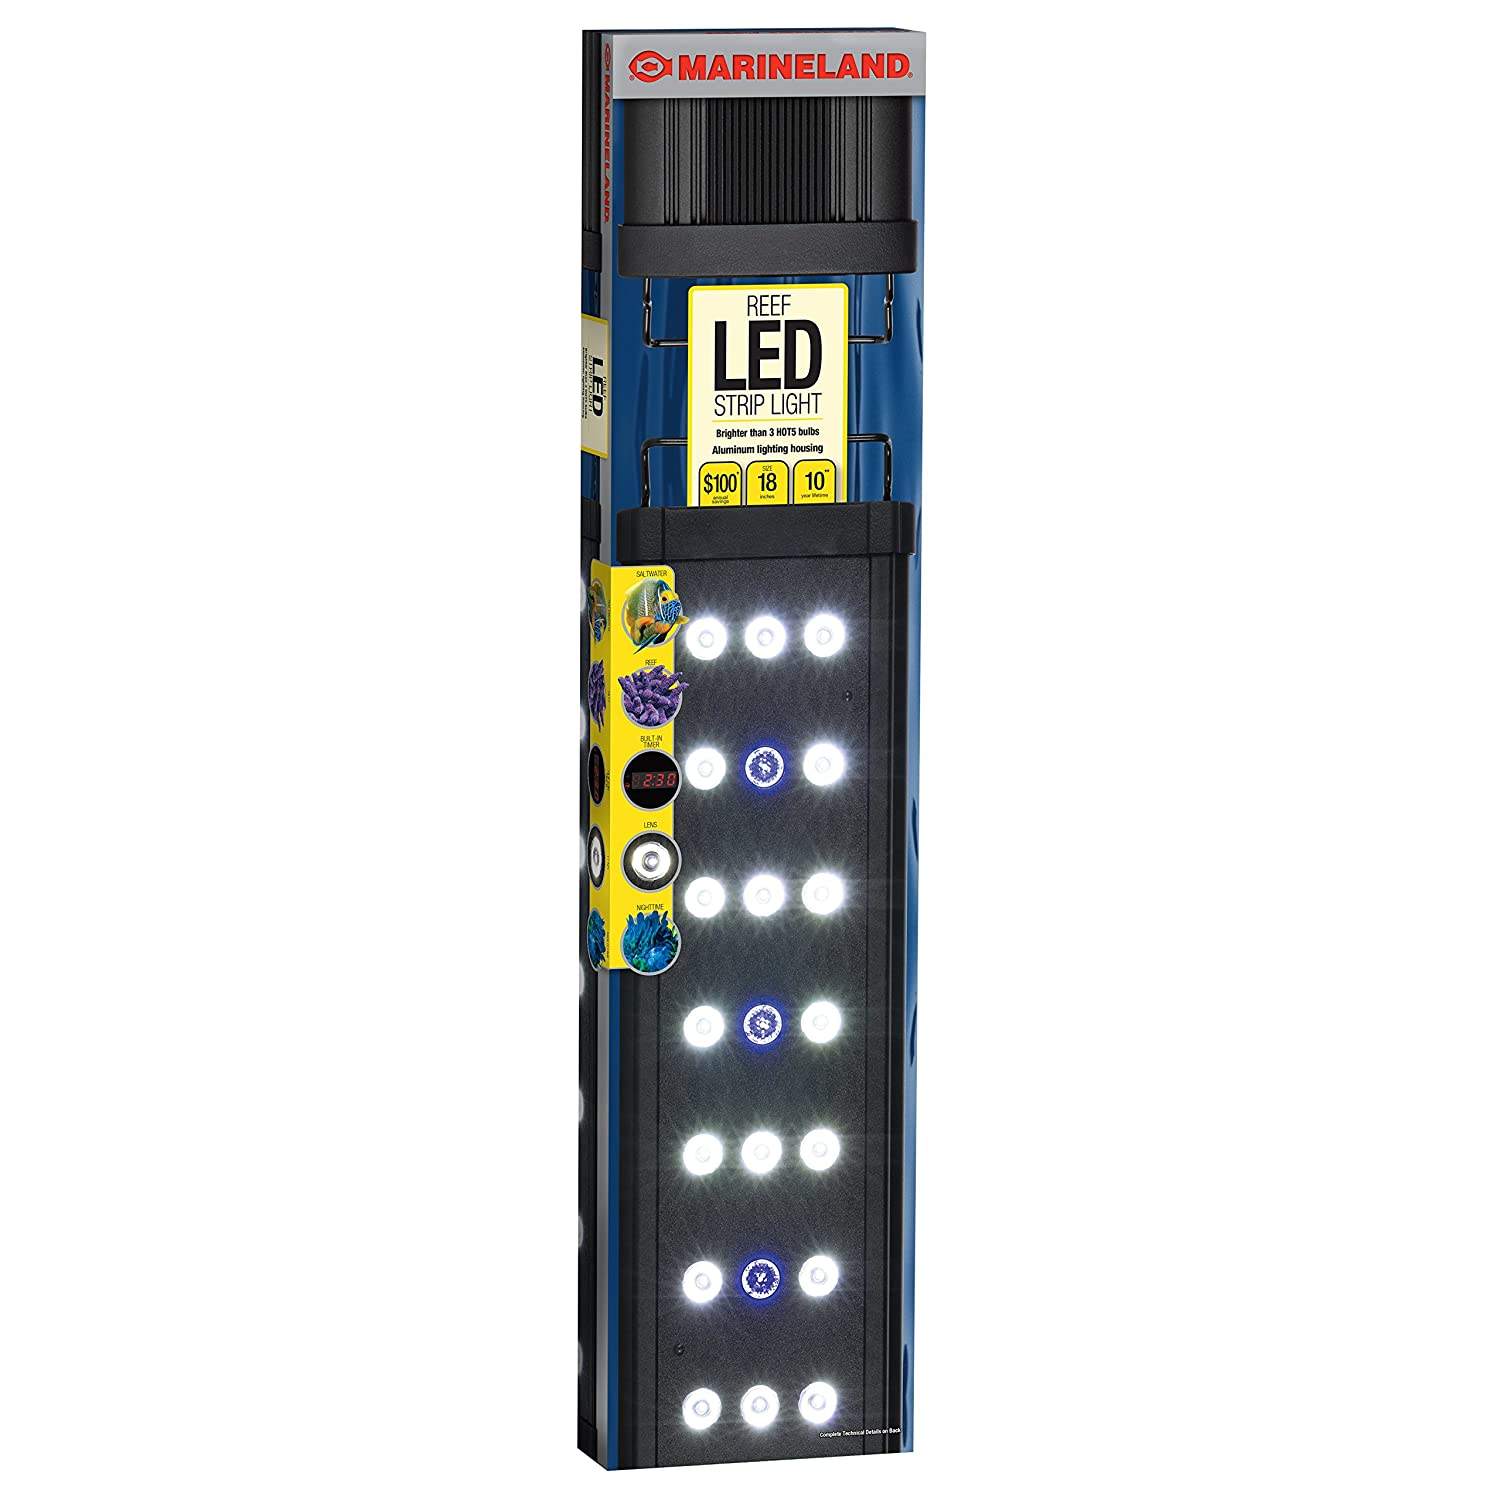 Amazon marineland ml90621 00 reef led strip light 24 inch amazon marineland ml90621 00 reef led strip light 24 inch pet supplies mozeypictures Image collections